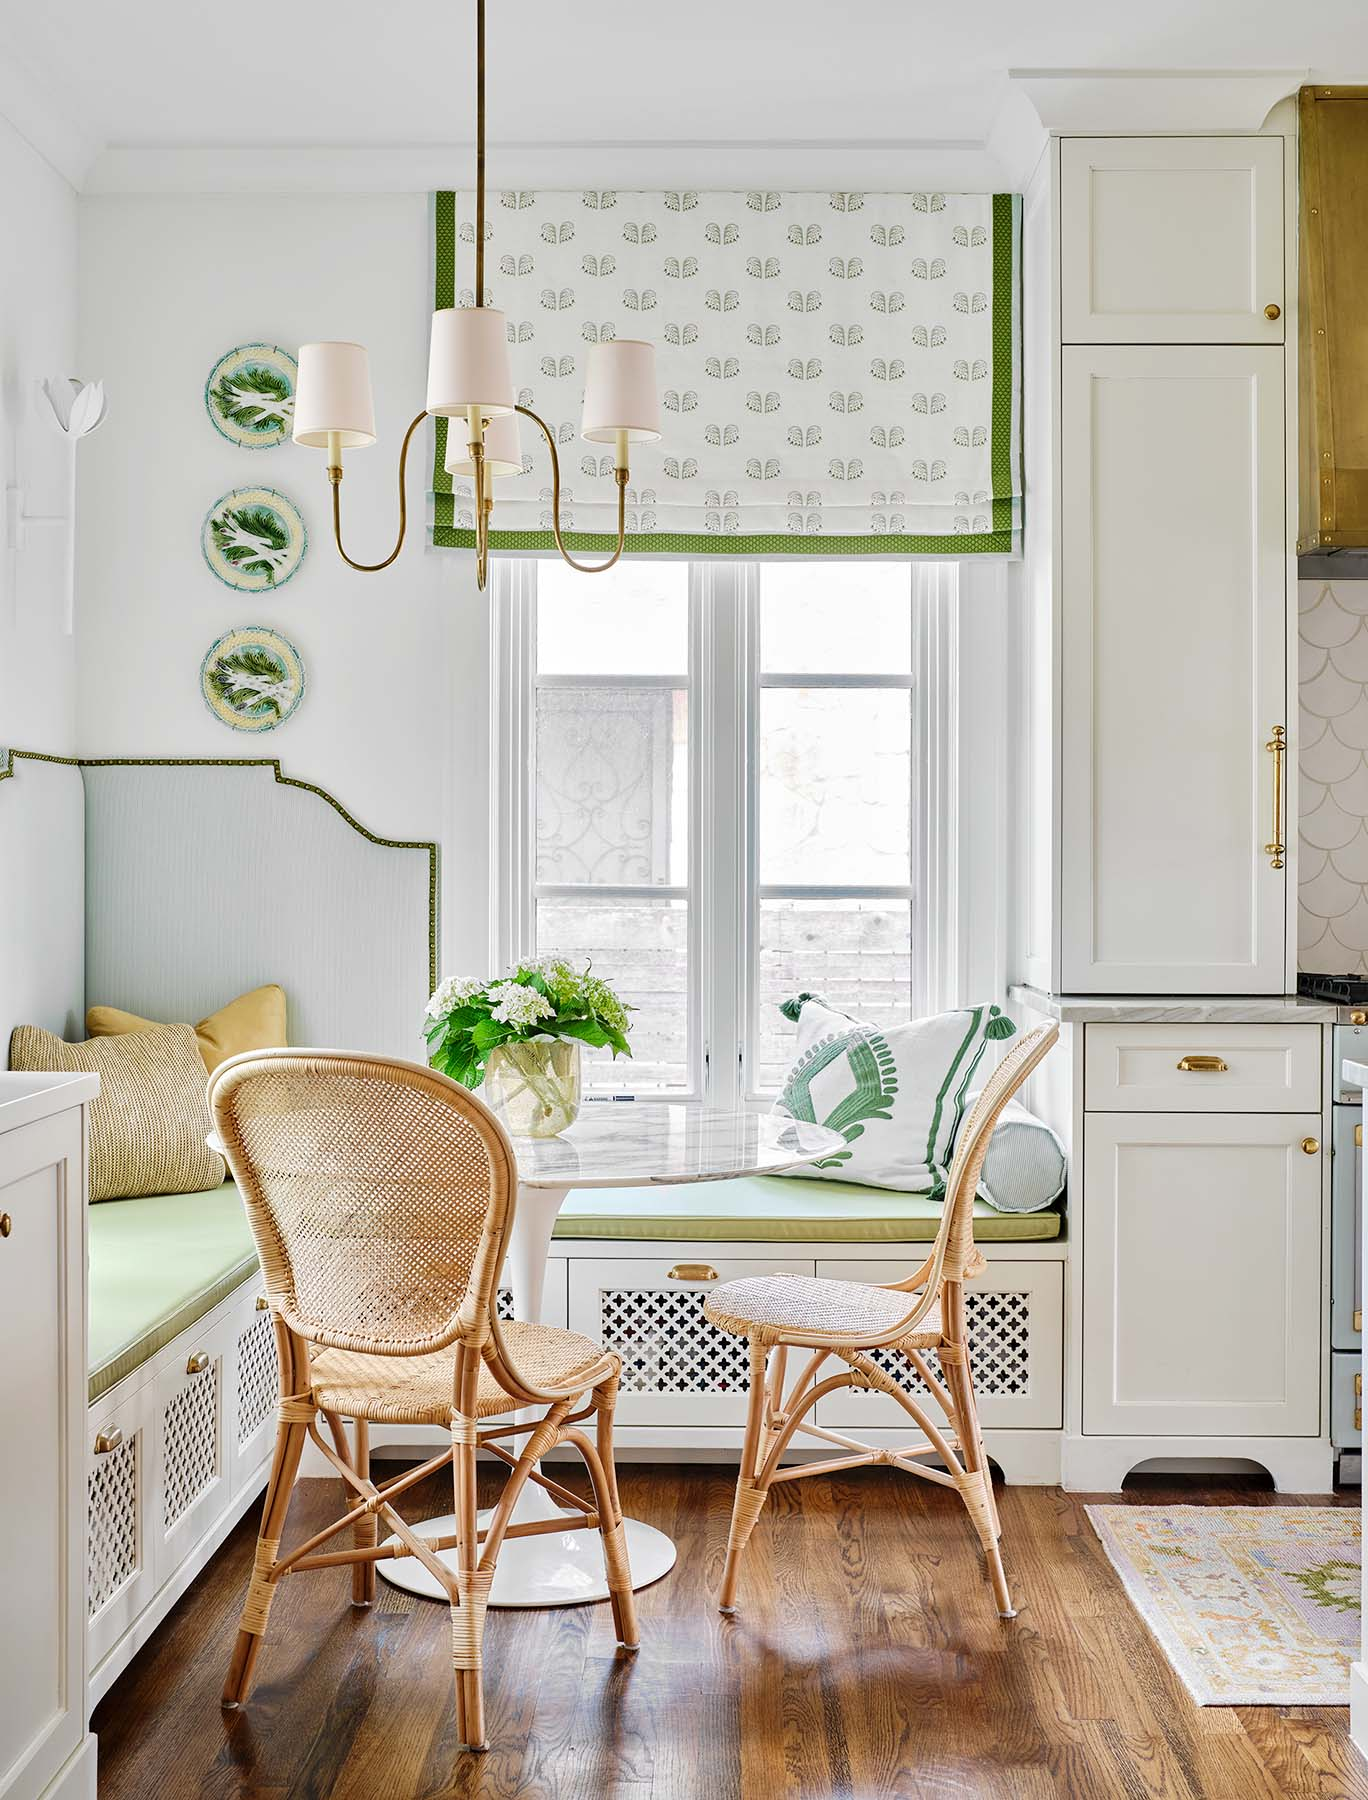 white-painted-kitchen-cabinets-paper-moon-painting-home-painter-olmos-park-tx-breakfast-nook